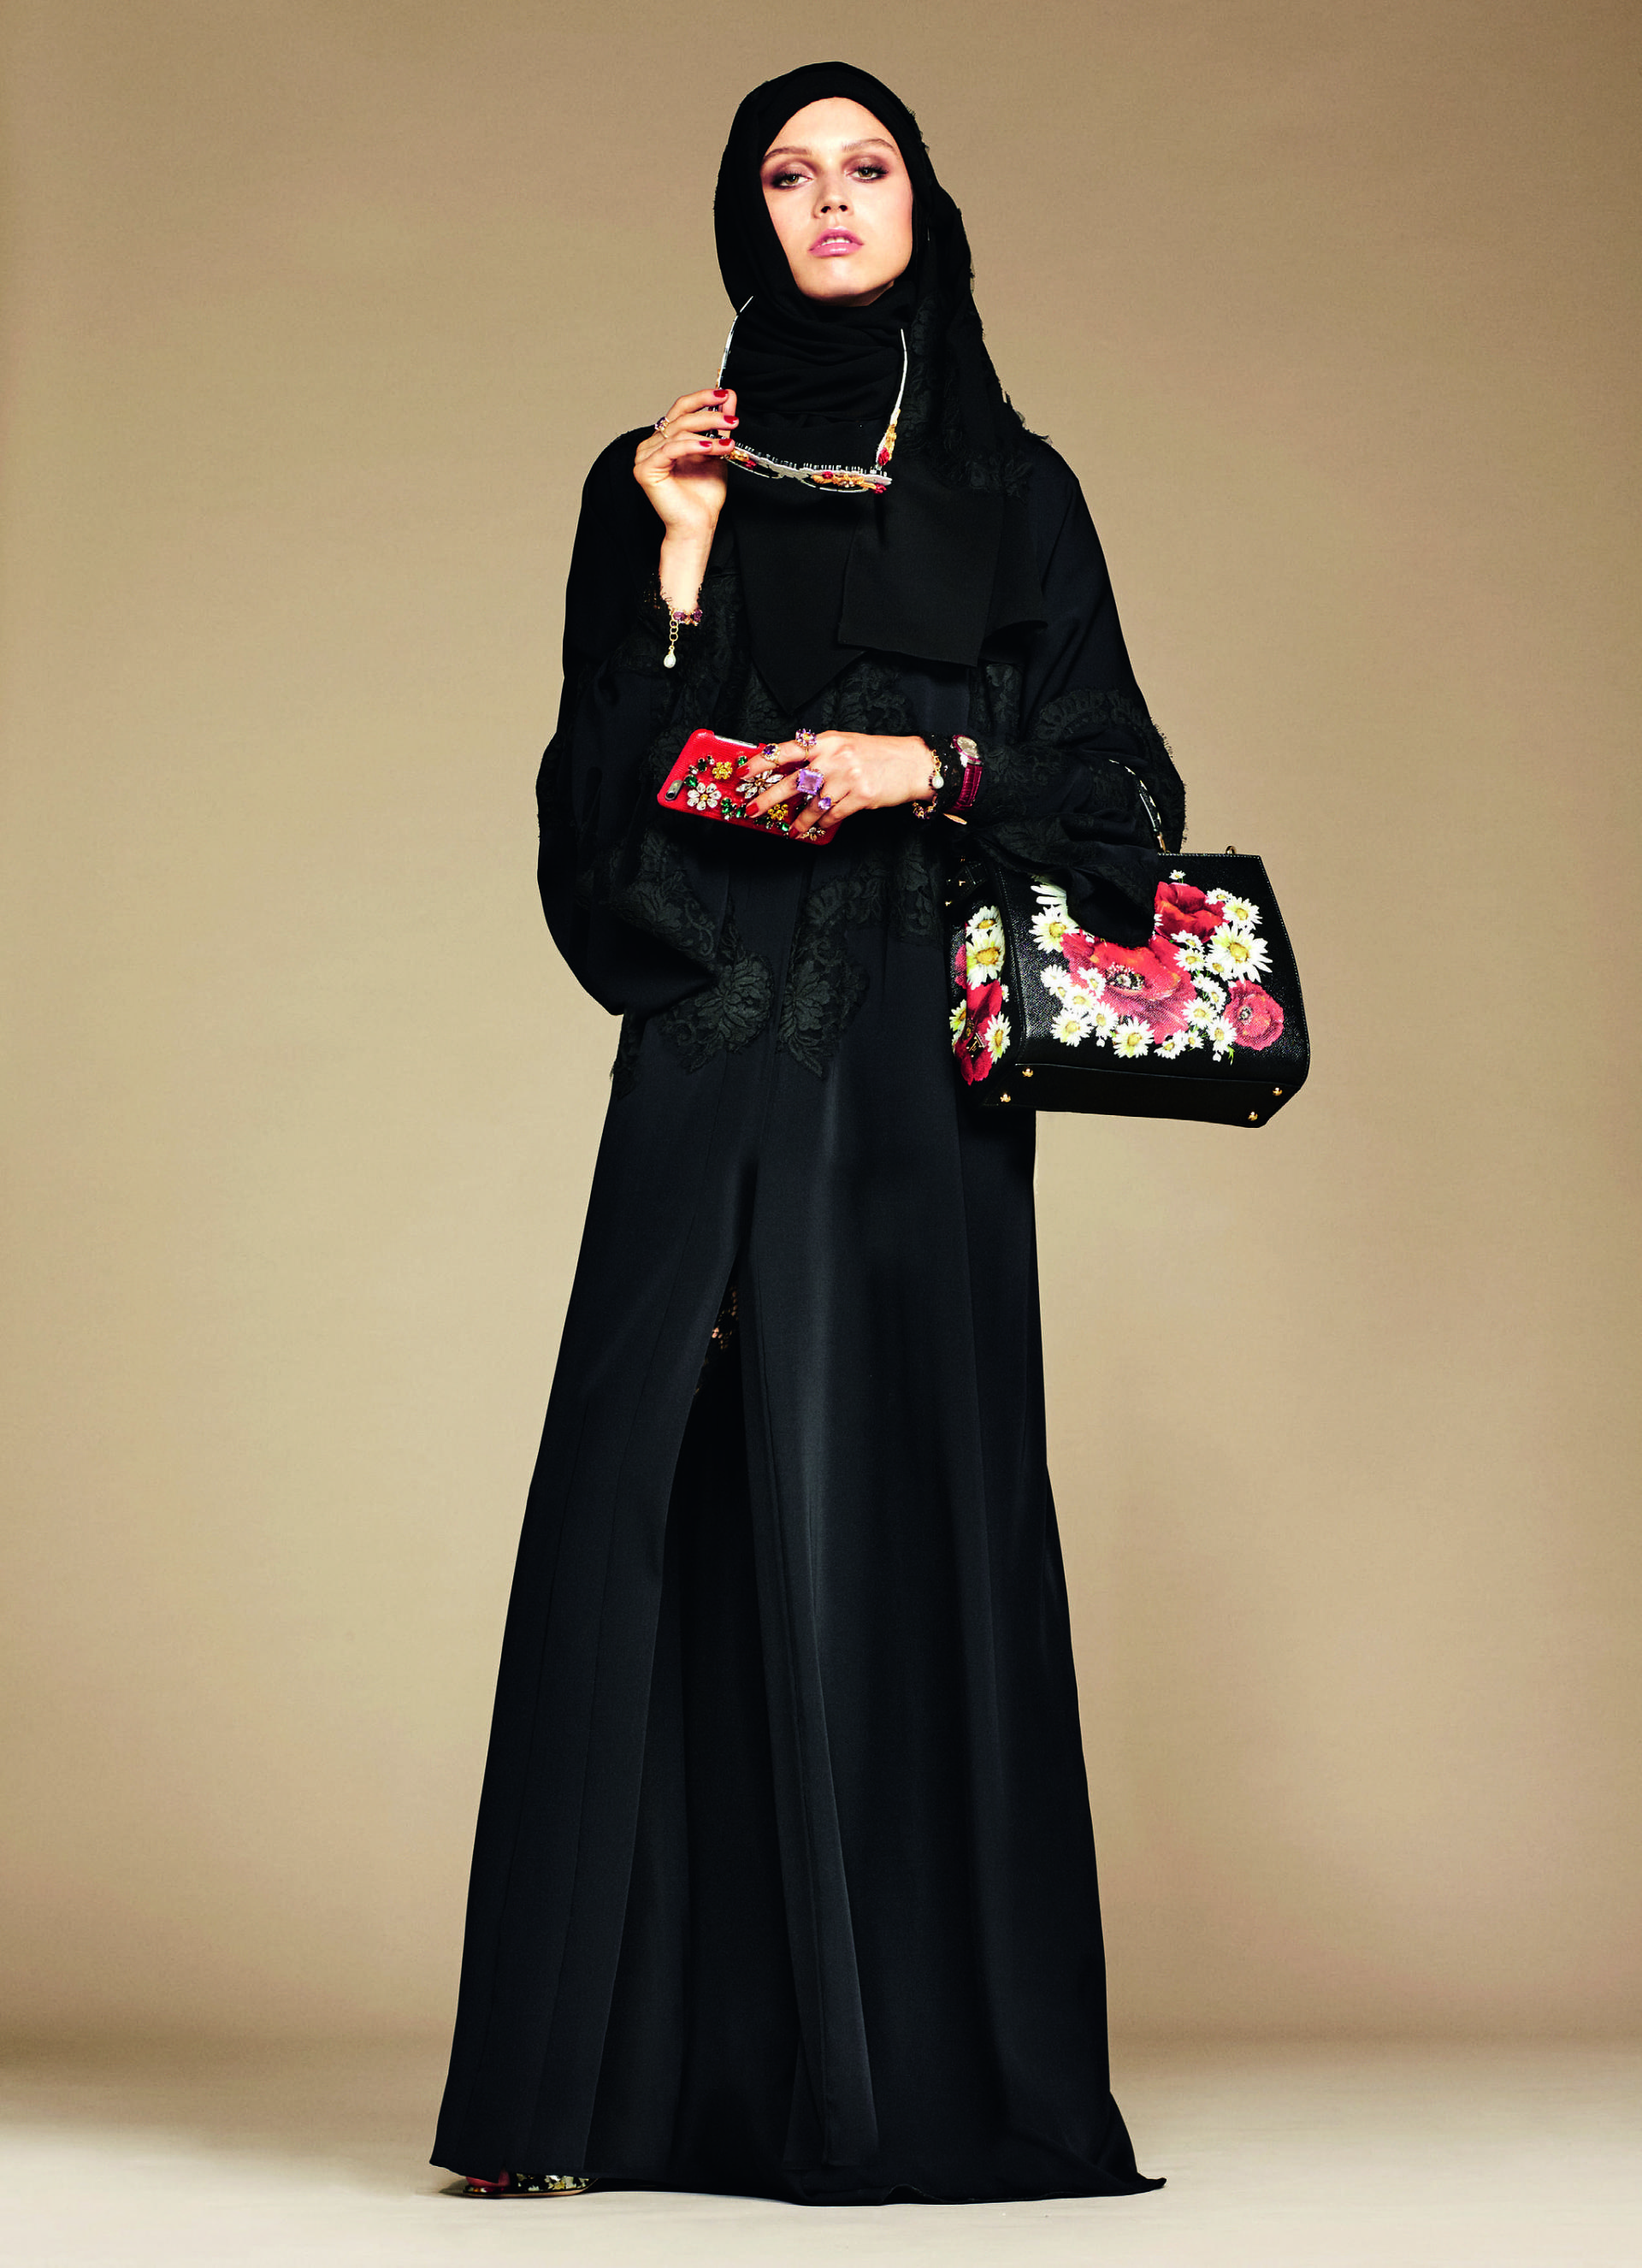 Over_Exposed_Dolce-Gabbana-Hijab-Abaya-Collection15